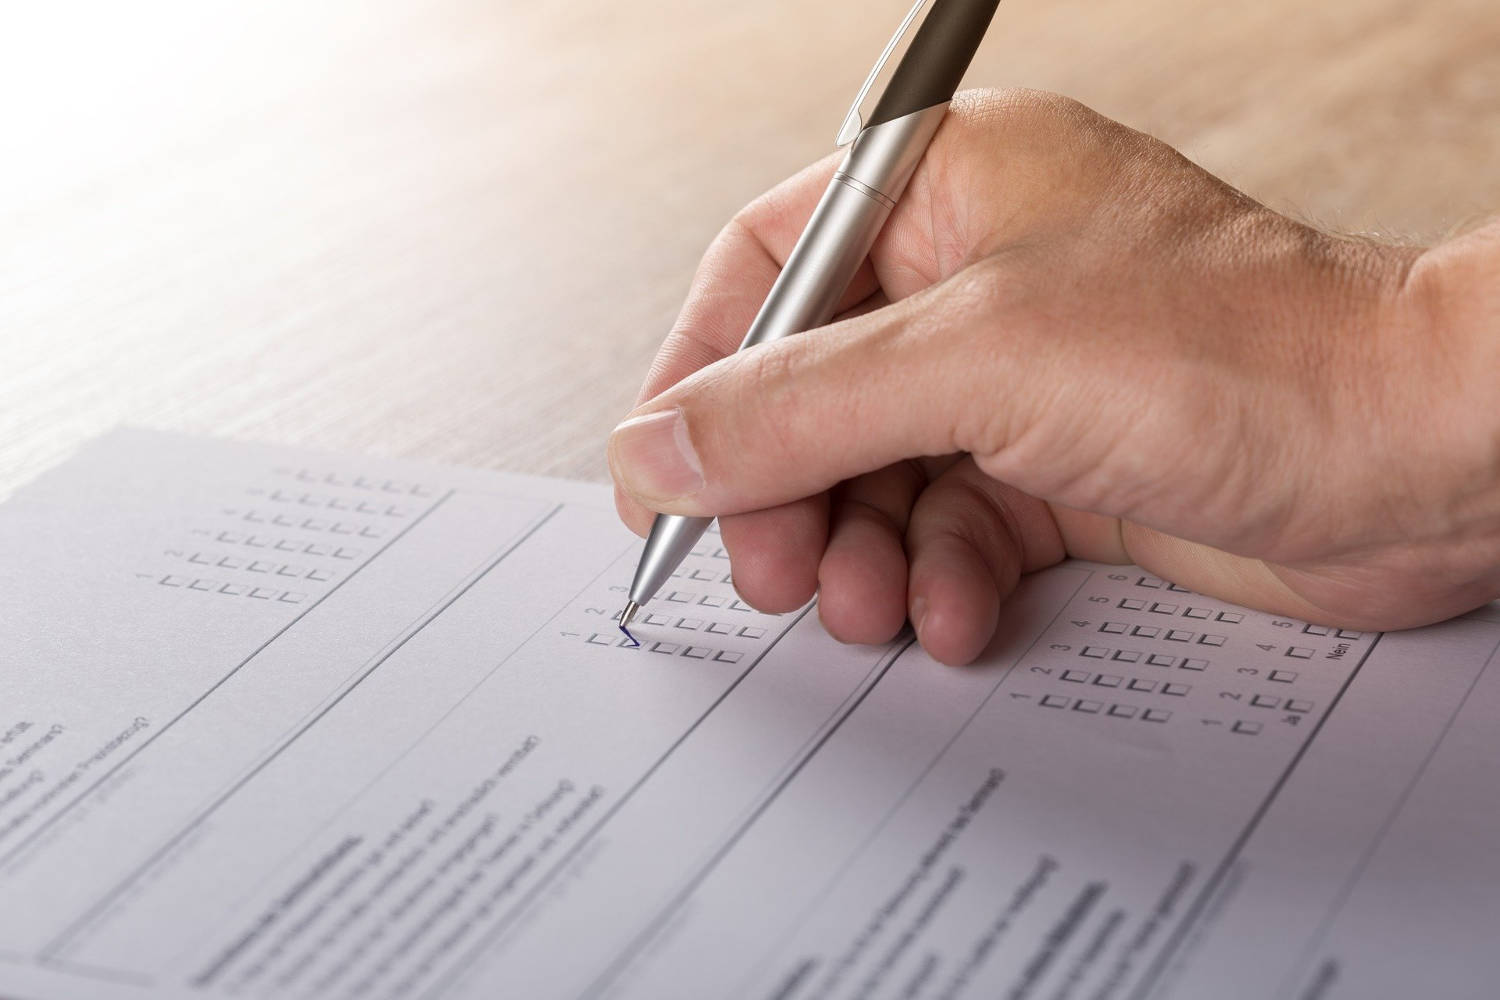 health needs assessments filling in questionnaire